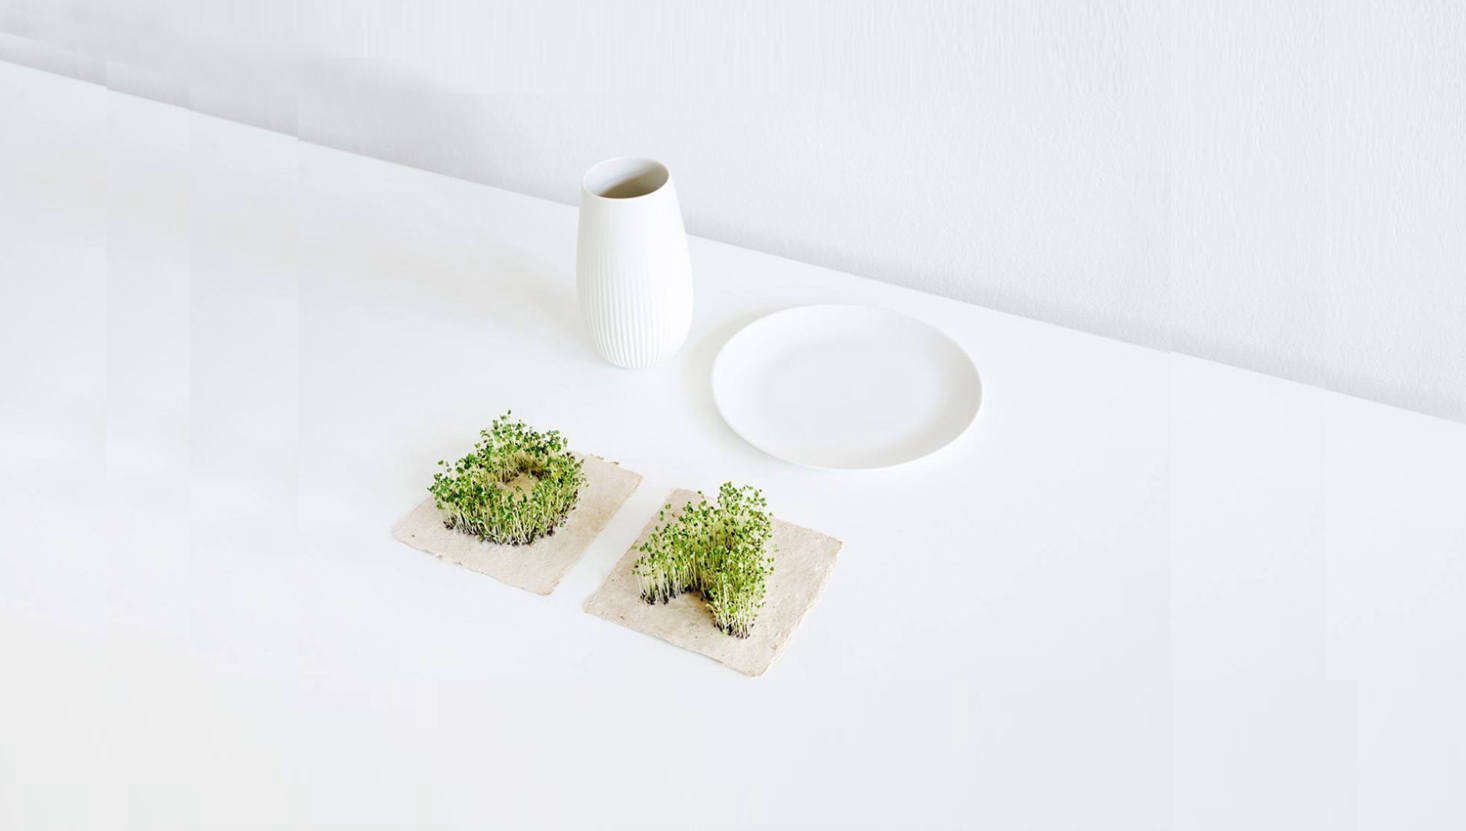 Perfect for secret messages: what looks at first like a simple piece of paper transforms into a miniature garden with the addition of water. Leafling Plant Growing Paper is imprinted with tiny seeds in the shape of letters (plus a heart); it&#8